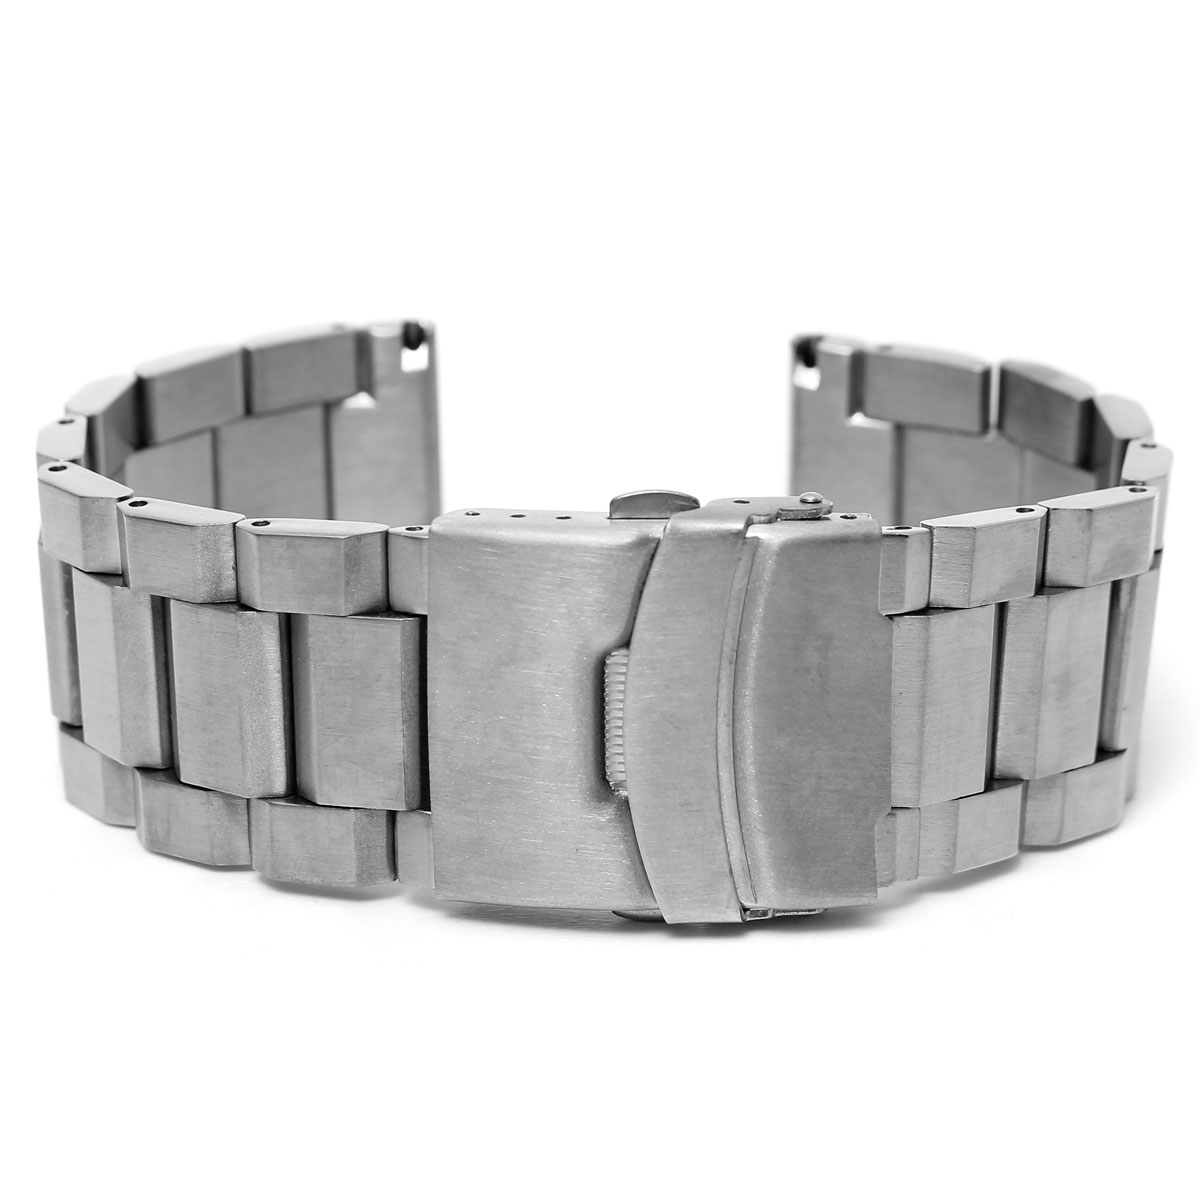 New 24mm Men 4 Colors Brushed Solid Stainless Steel Bracelet Watch Strap  With Double Flip Lock Buckle